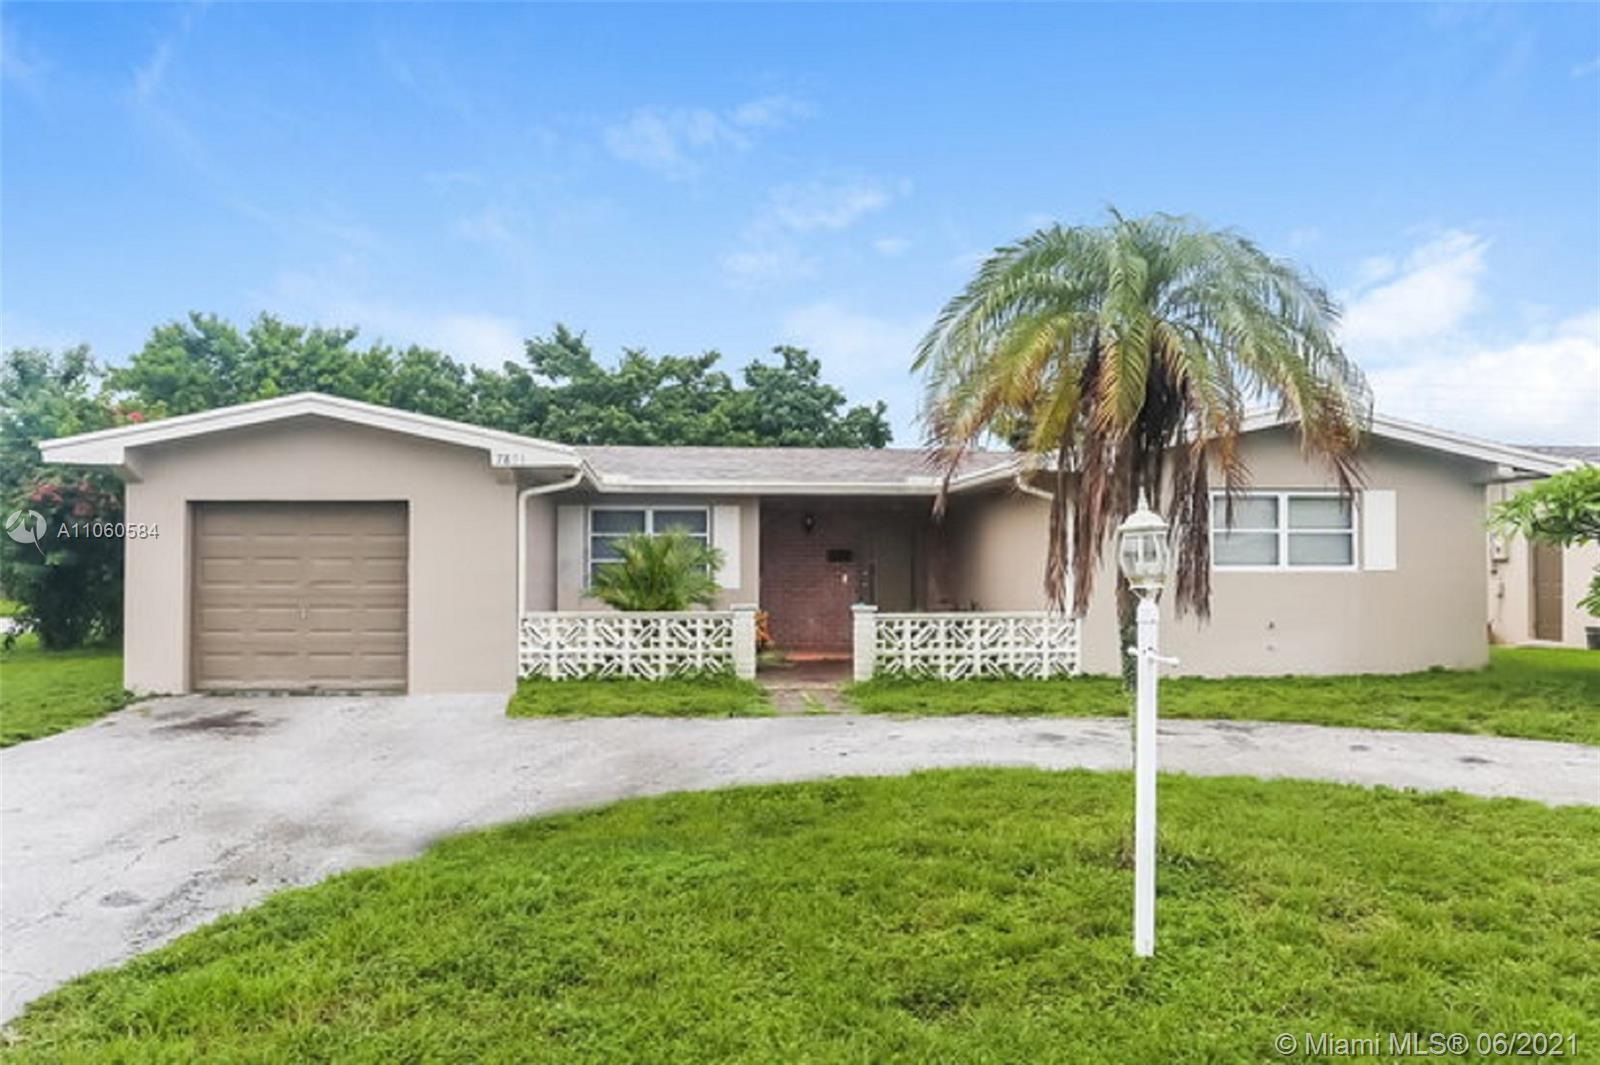 Boulevard Heights - 7891 NW 14th St, Pembroke Pines, FL 33024